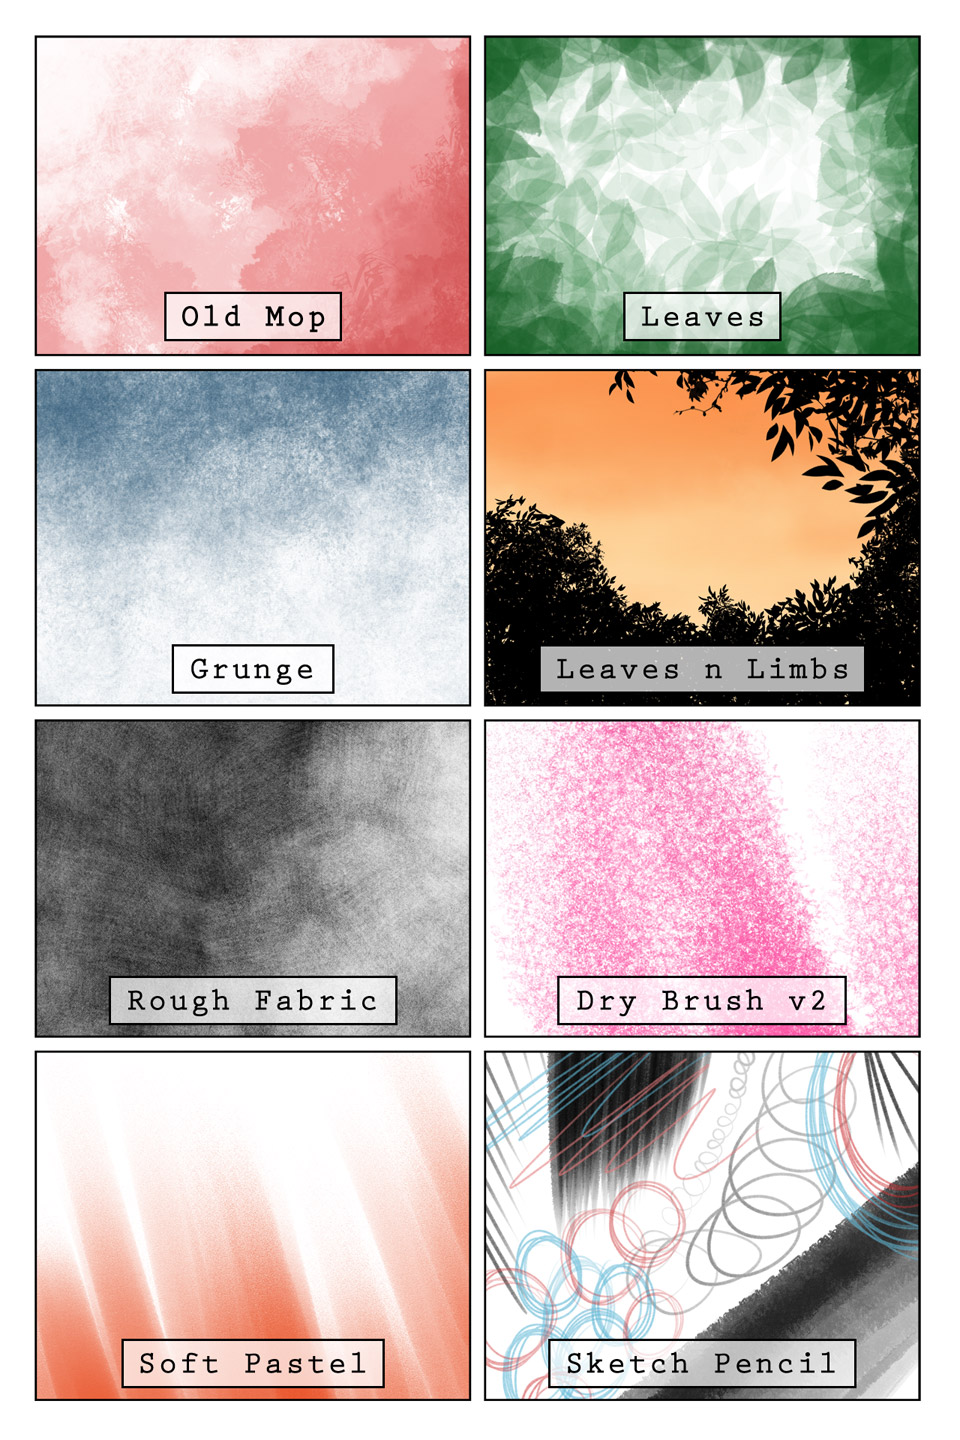 Happy Little Brushes: Part 2 - Manga Studio 5 by HaloGhost